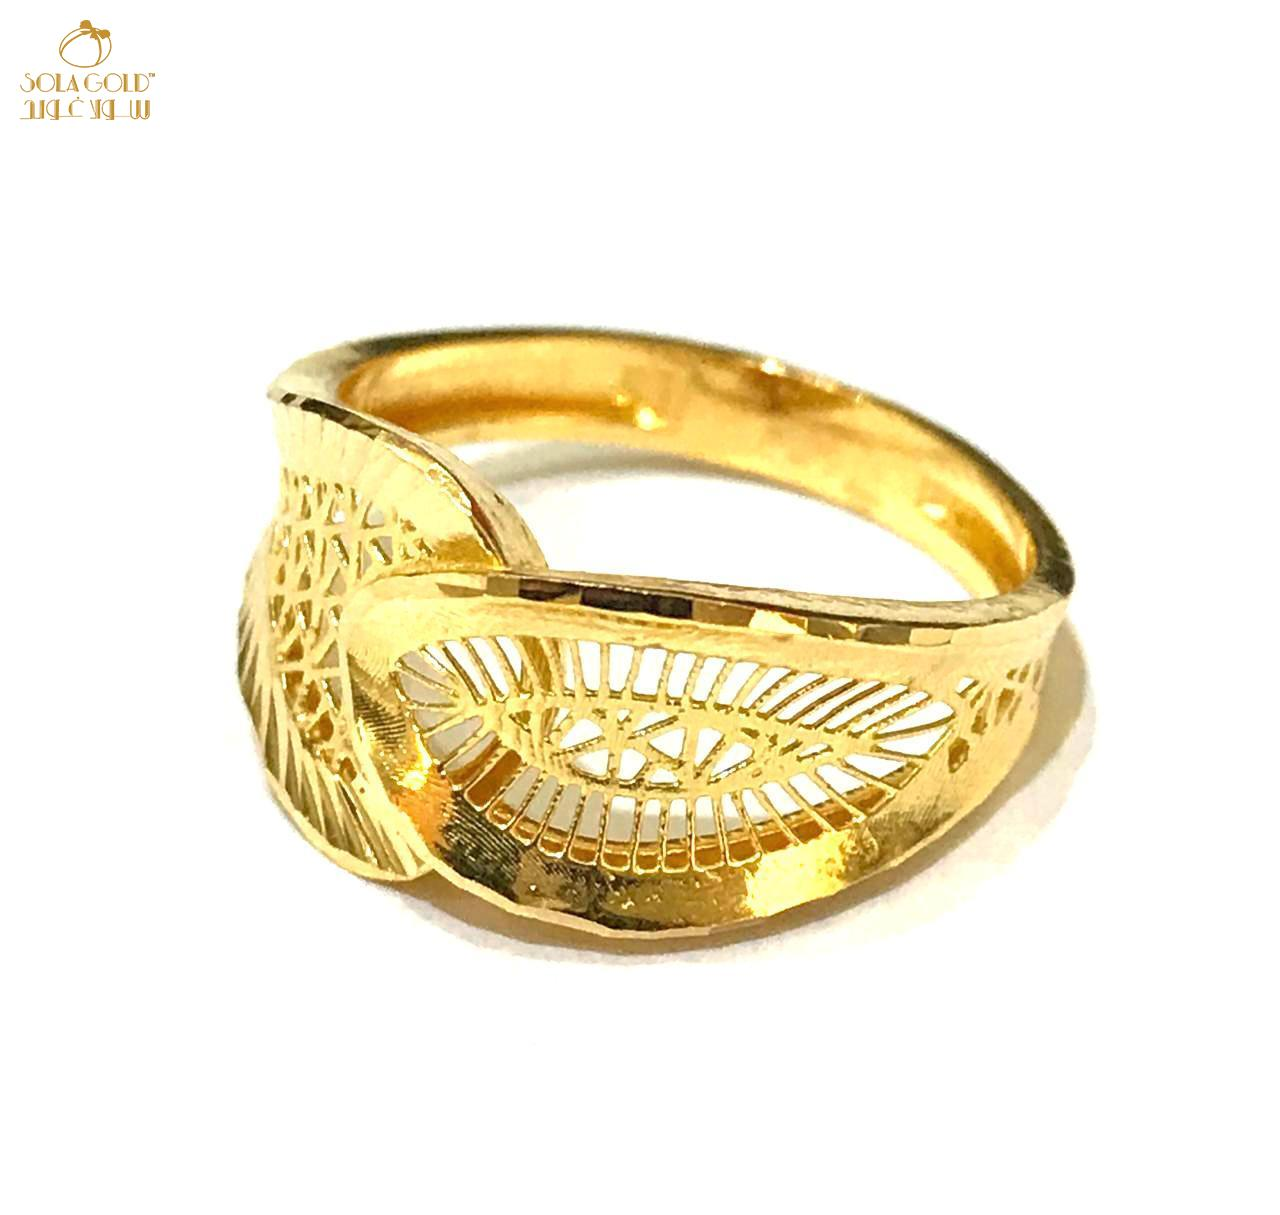 REAL GOLD RING 21K (SIZE:7.9)